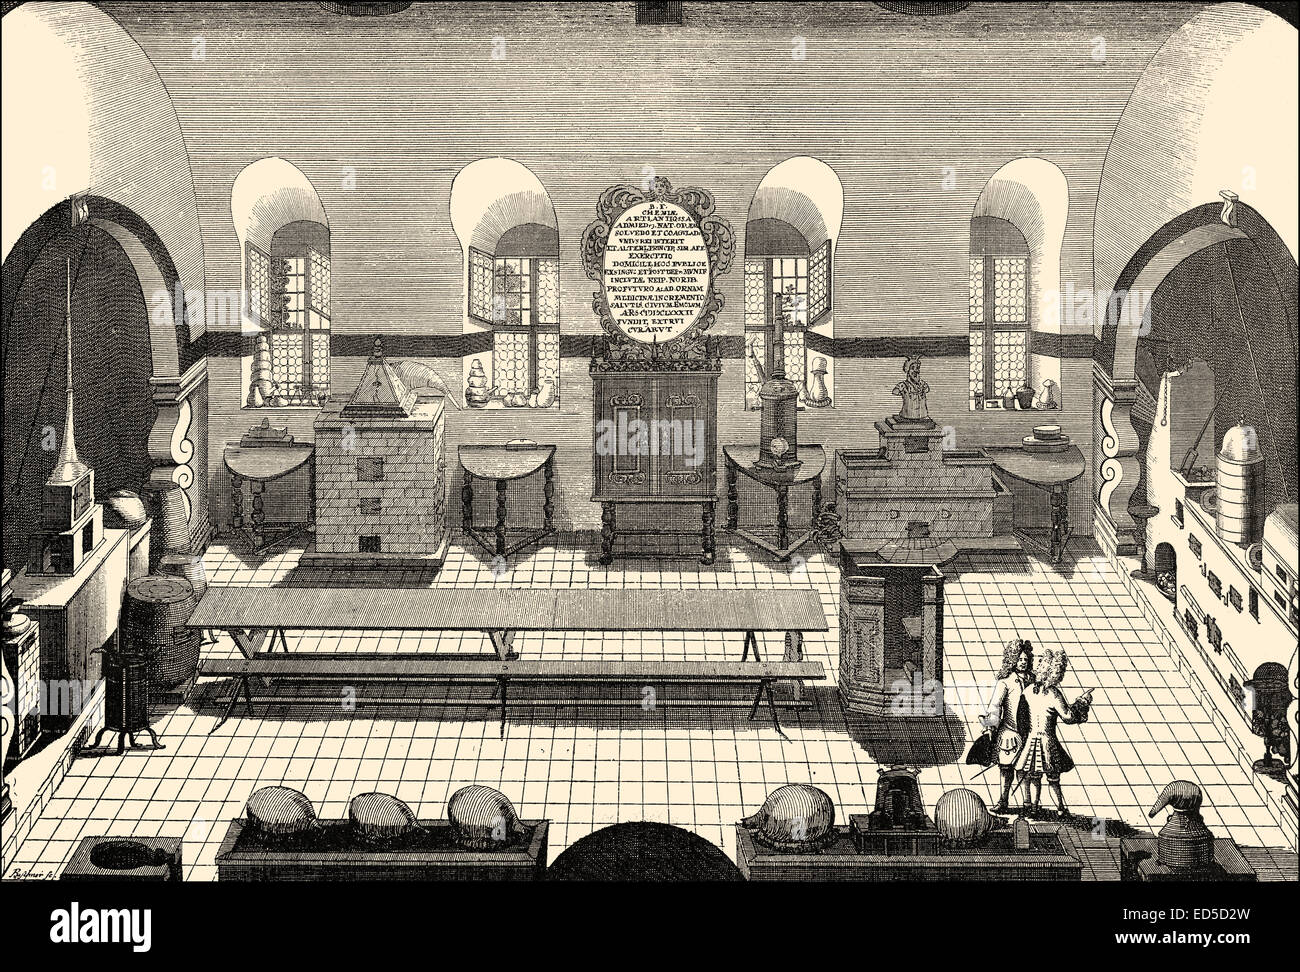 Chemical laboratory, 17th Century, University Altdorf, Bavaria, Germany, chemisches Labor der Universität Altdorf, Stock Photo